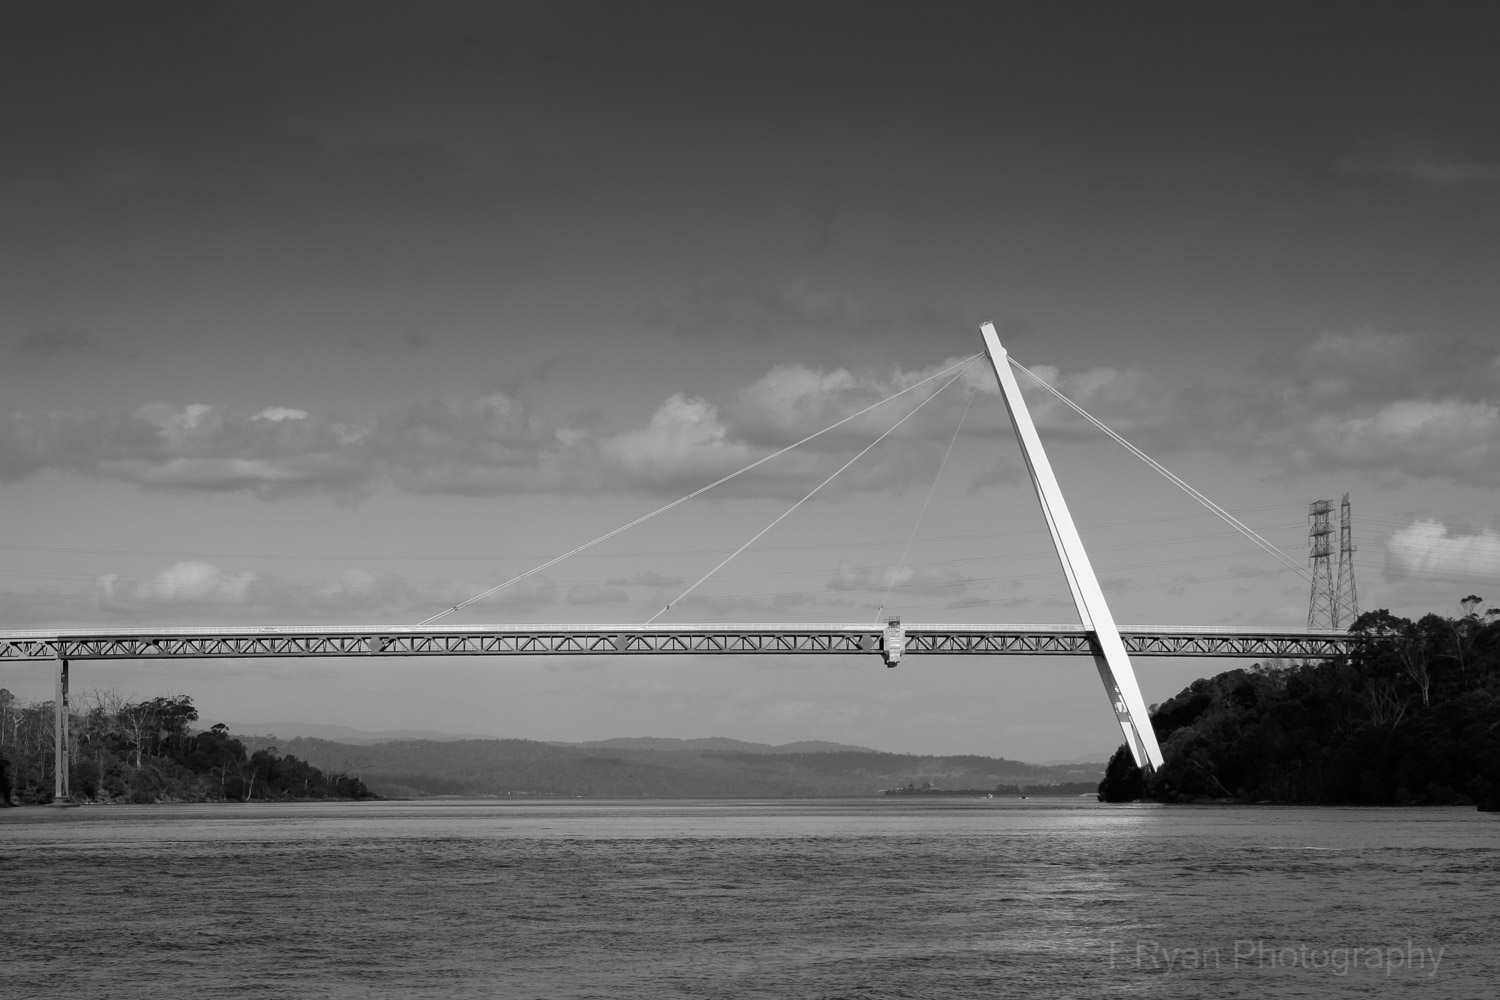 The Batman Bridge spanning the River Tamar designed in the 1960s was one of the many examples of Modernist design being built in the mid 20th Century boom years.